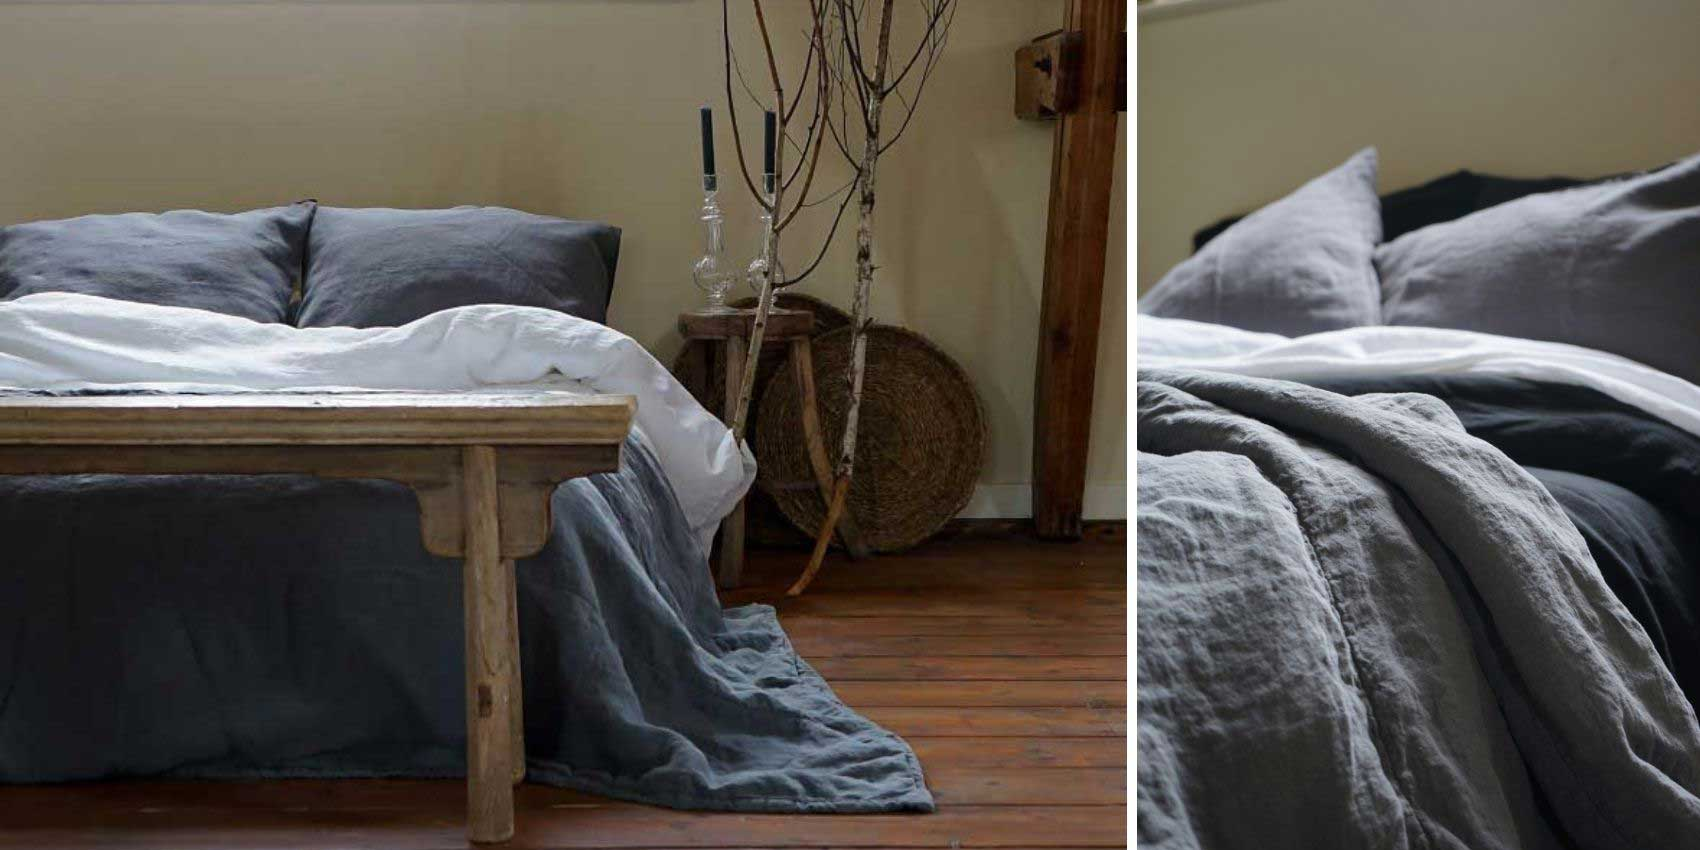 Webshop specialised in linen bedding – Casa Comodo